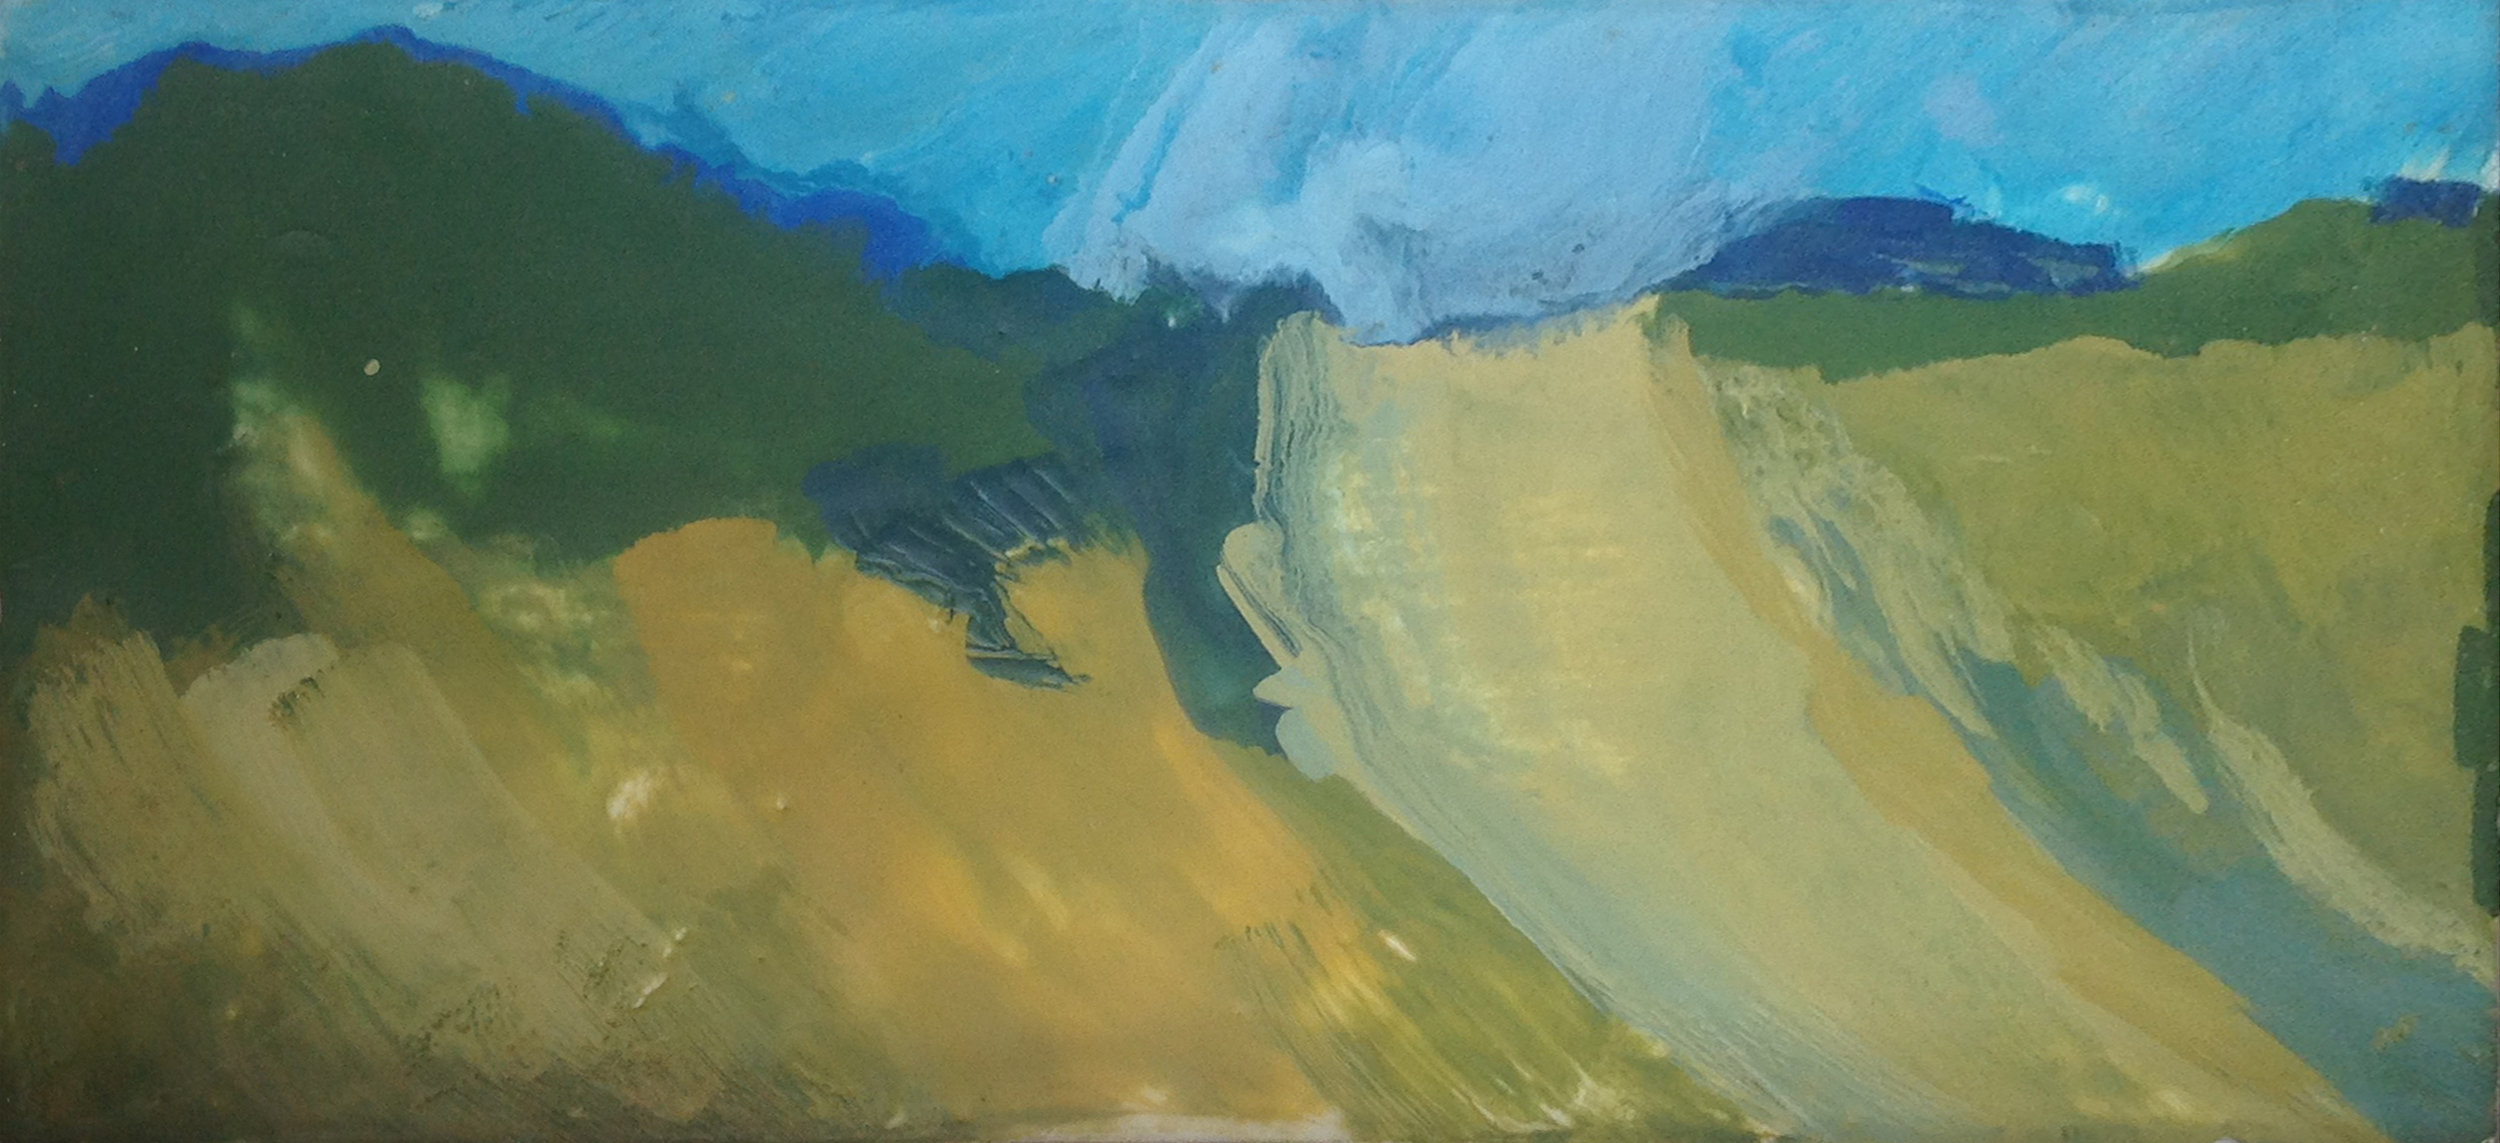 Dunes - Encaustic - 6 x 12 - Collection of Abraham Reybold